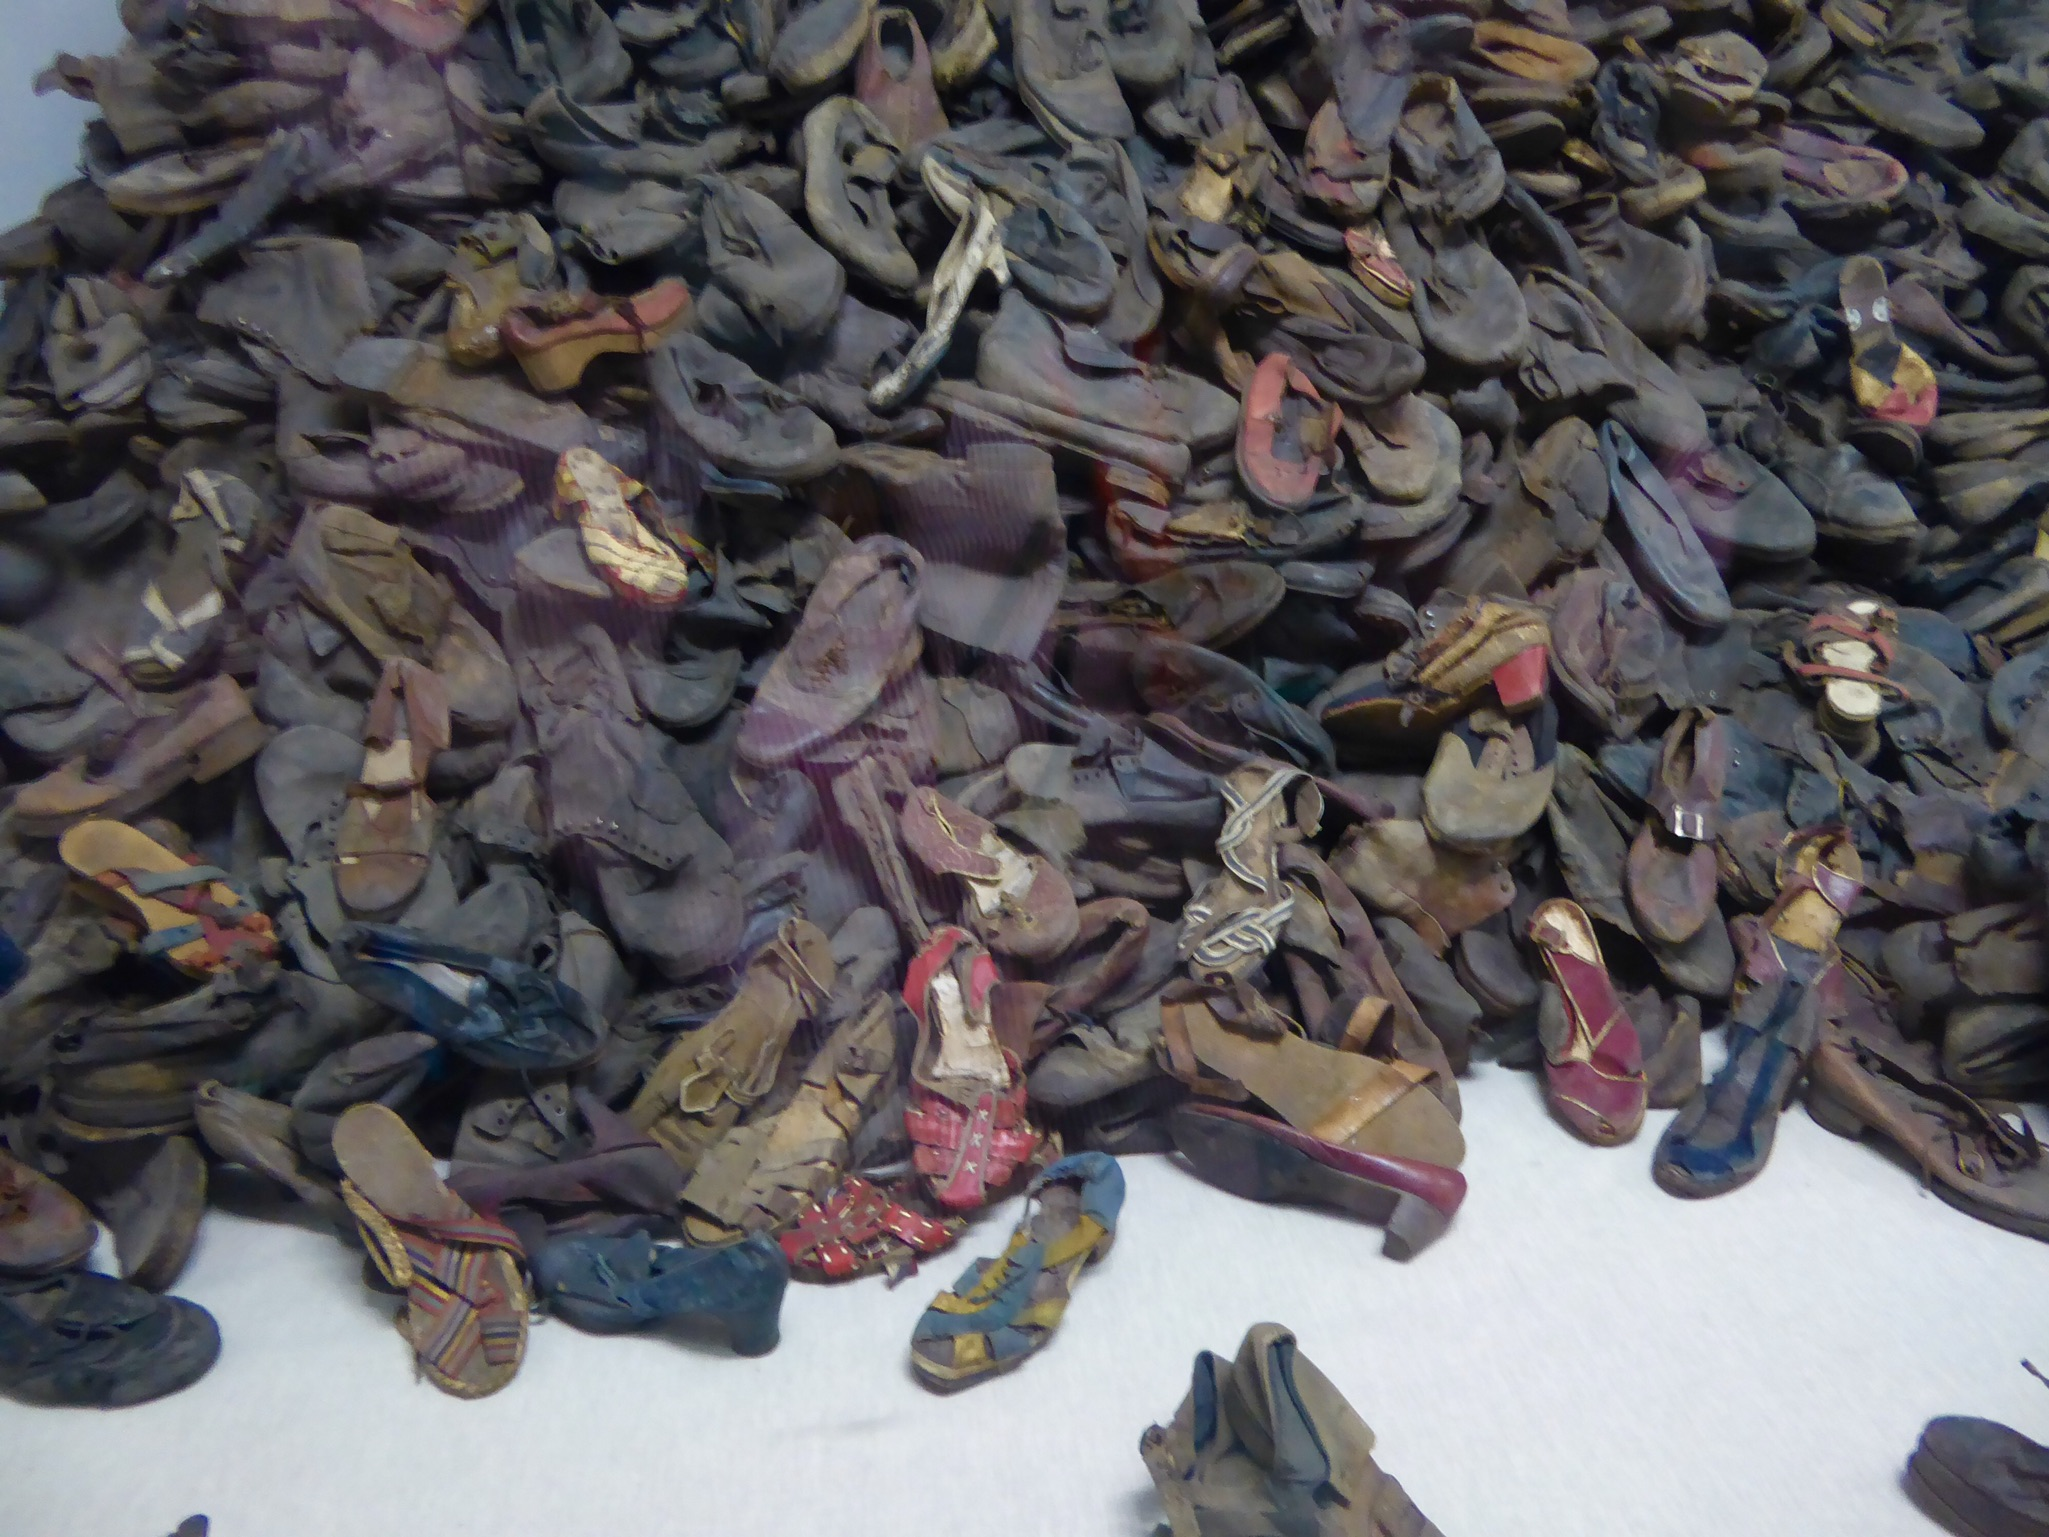 Shoes collected from the victims at Auschwitz.